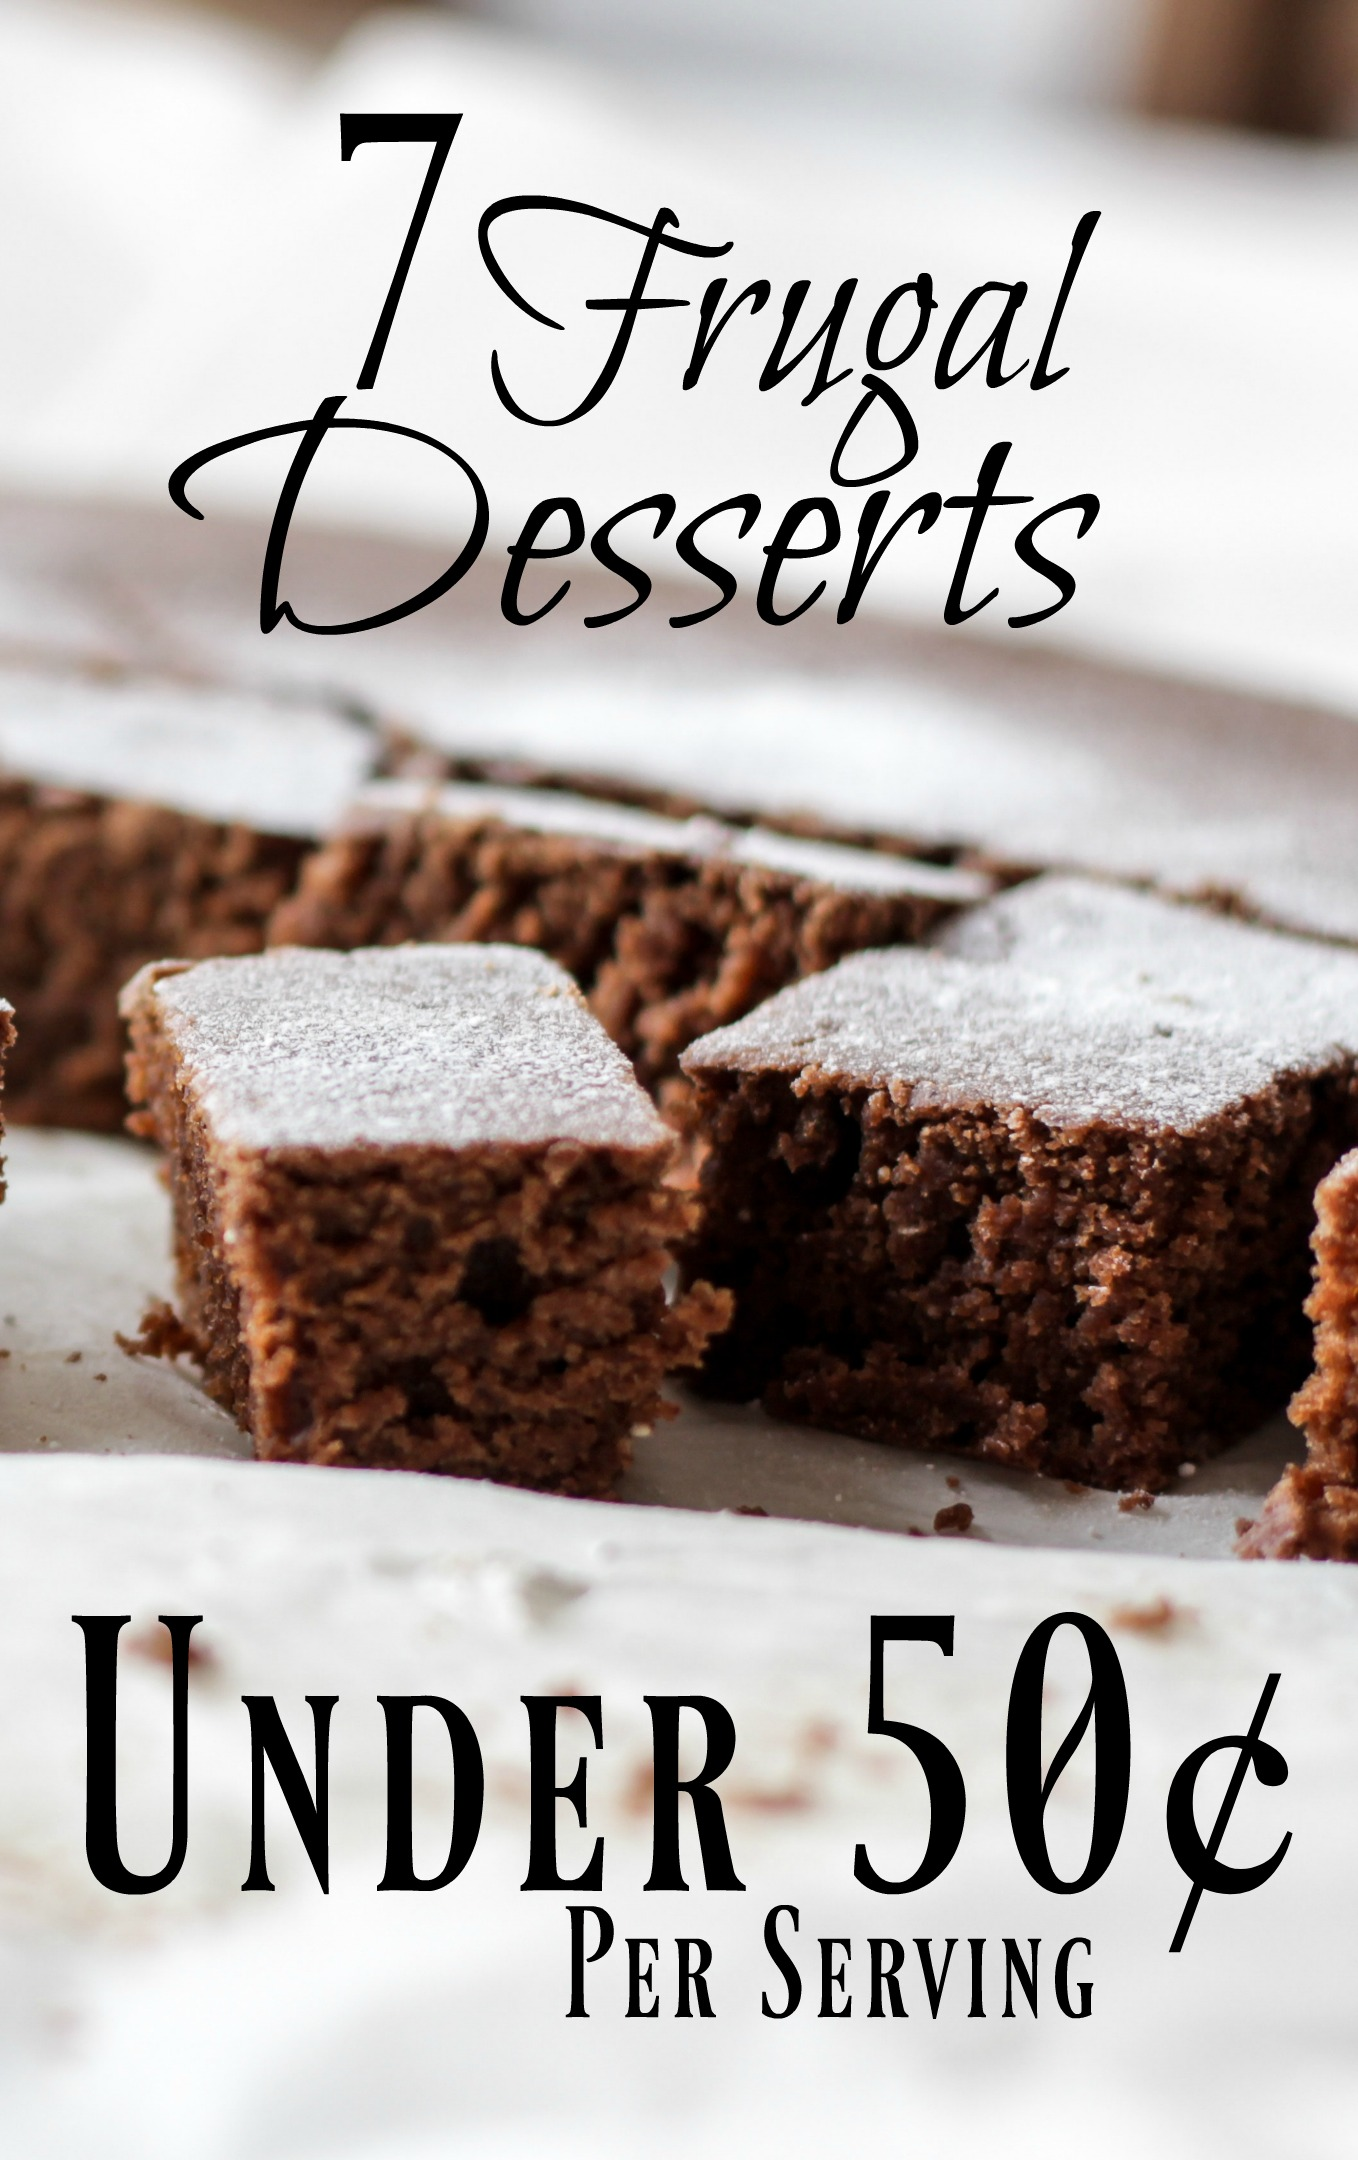 Looking for a delicious treat to make with dinner tonight but need to stick to a very tight budget? Each of these recipes is well under $0.50 per serving!